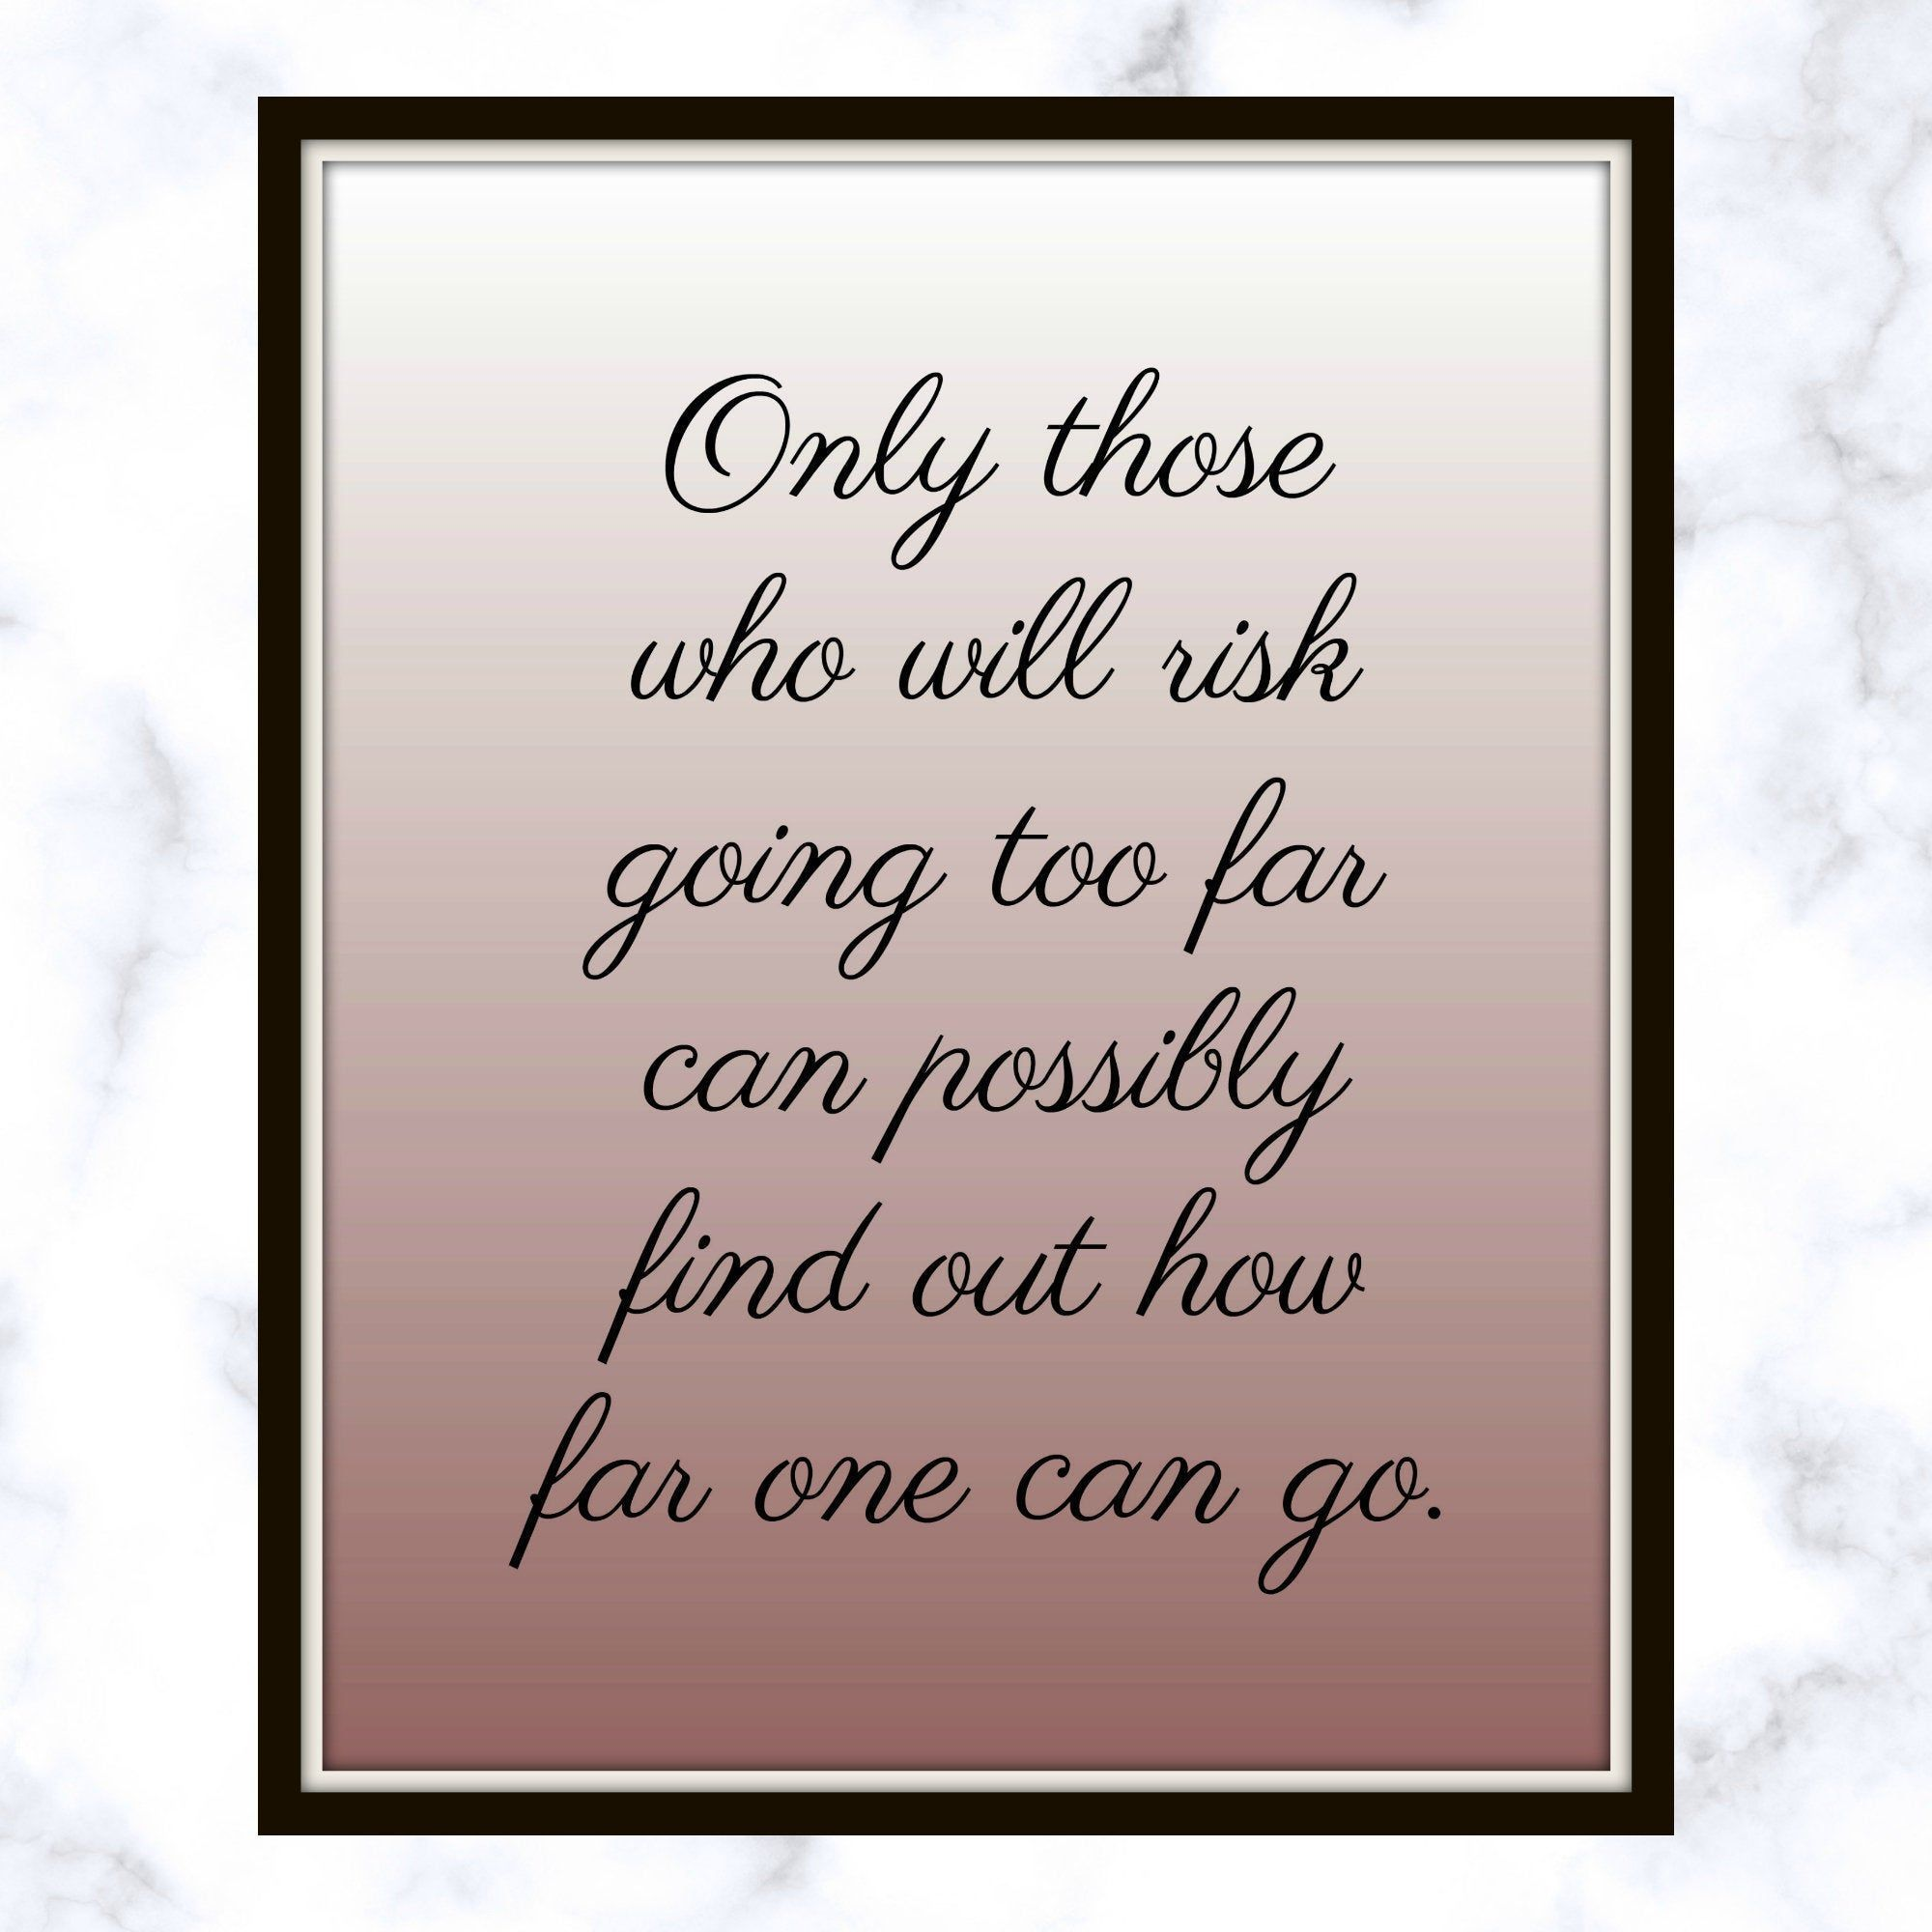 Only those who will risk going too far can possibly find out how far one can go. - T. S. Eliot - Quote - Printable - Taking Chances #quotesabouttakingchances Only those who will risk going too far can possibly find out how far one can go. - T. S. Eliot - Quote - Printable - Taking Chances #quotesabouttakingchances Only those who will risk going too far can possibly find out how far one can go. - T. S. Eliot - Quote - Printable - Taking Chances #quotesabouttakingchances Only those who will risk g #quotesabouttakingchances